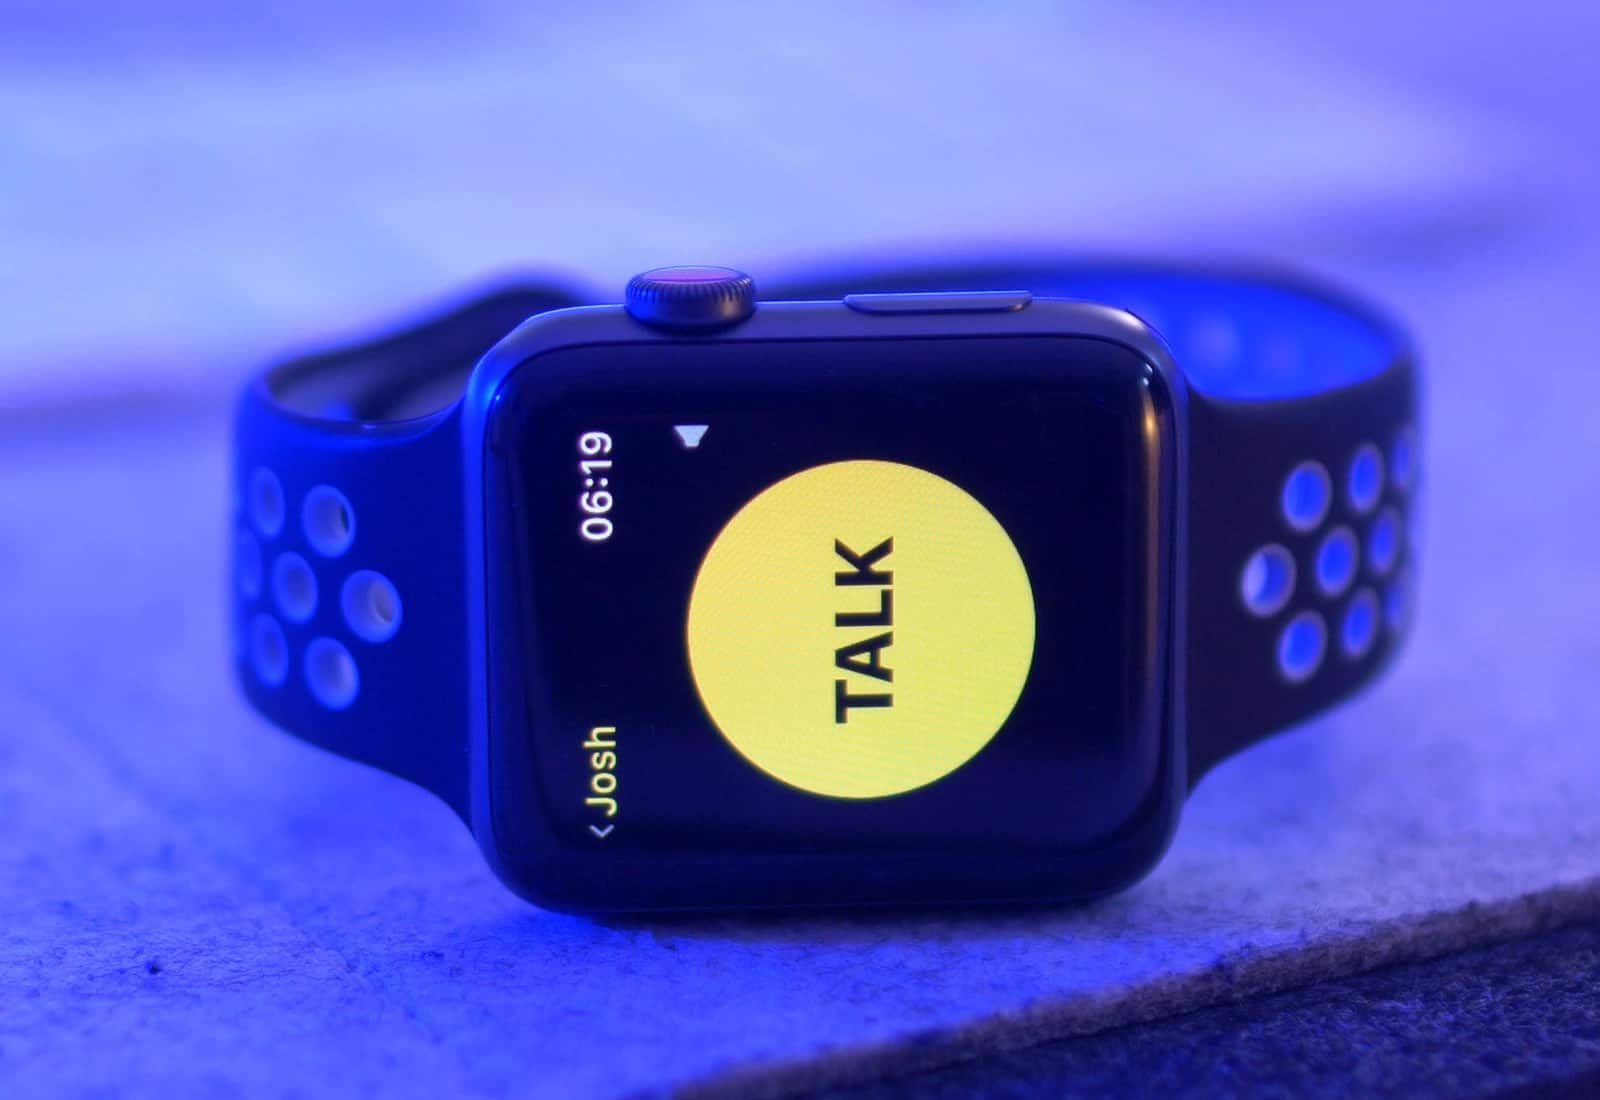 Take a handson look at the WalkieTalkie app with watchOS